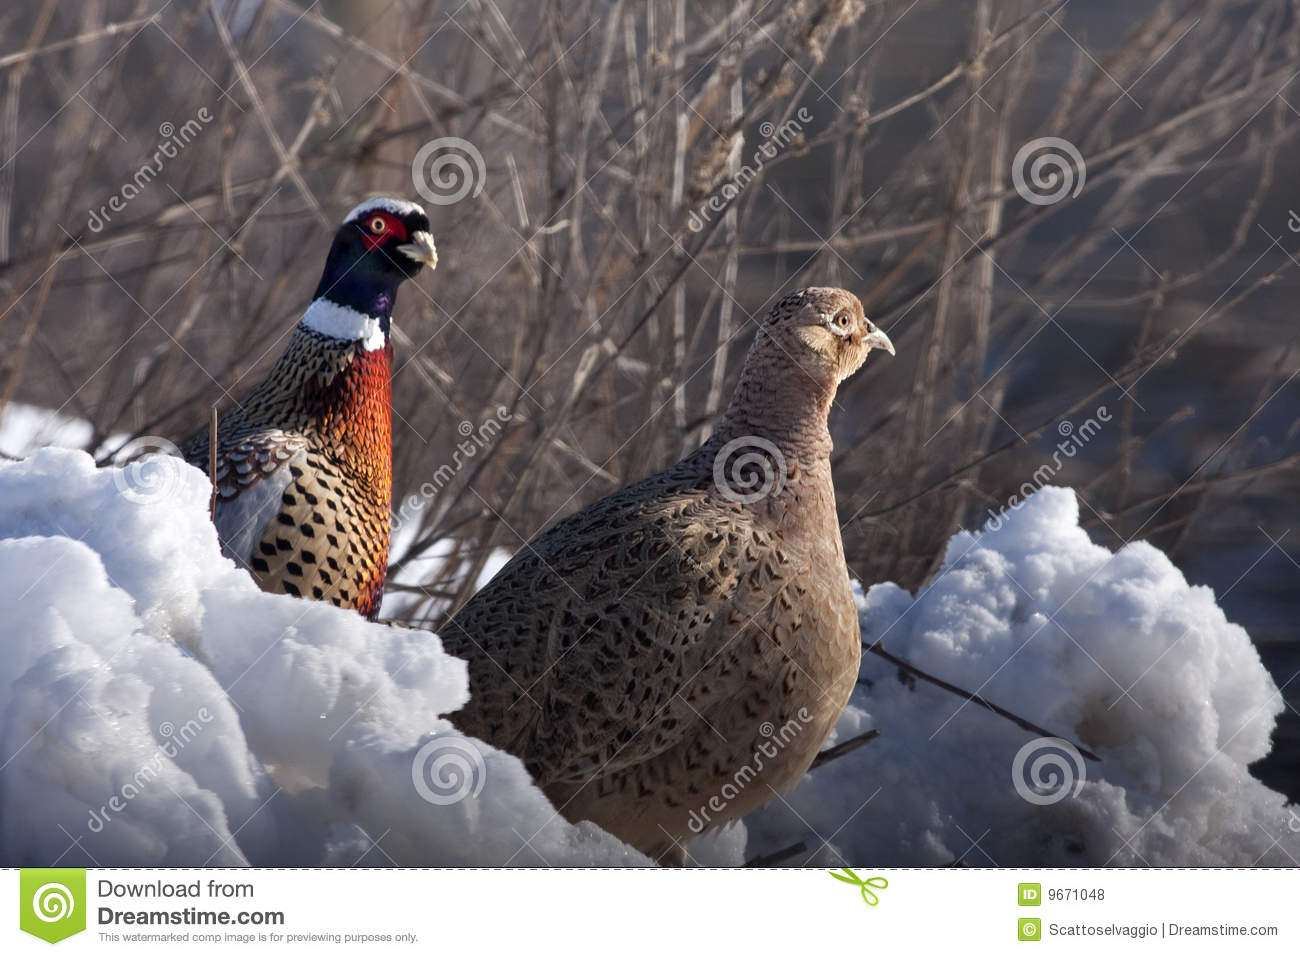 Male and female Pheasants in winter, Phasianus colchicus mongolicus